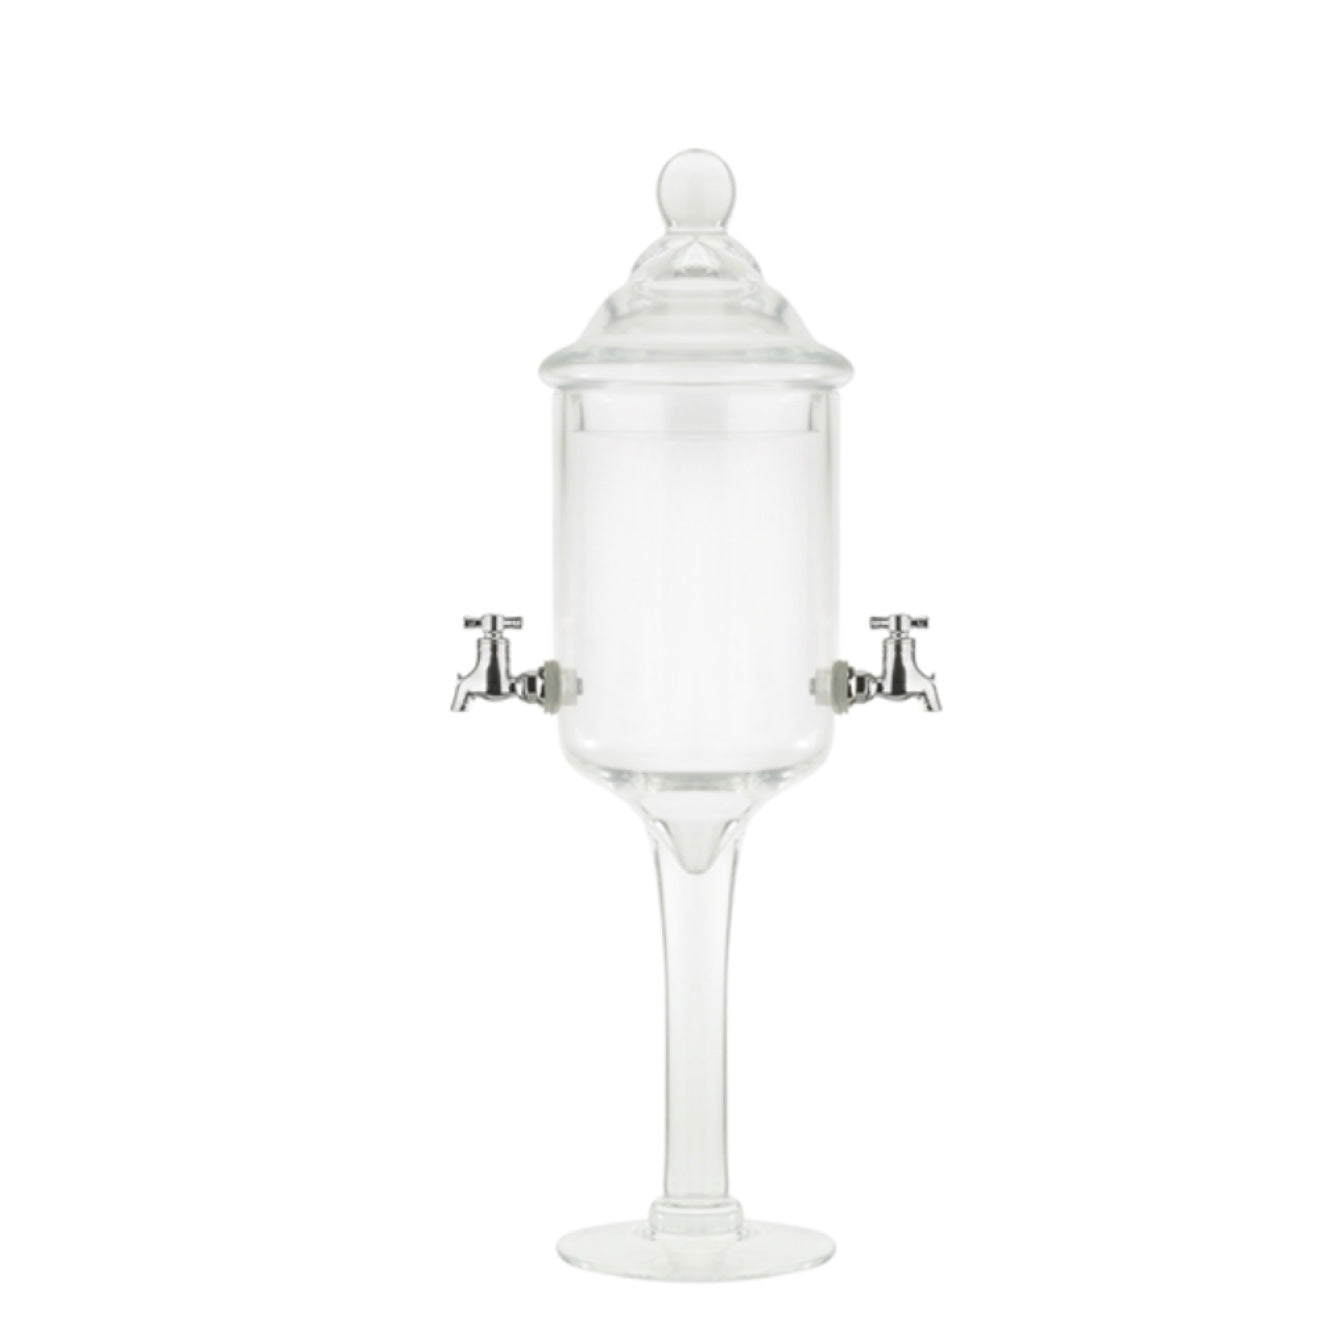 Glass Absinthe Fountain - 2 Spout